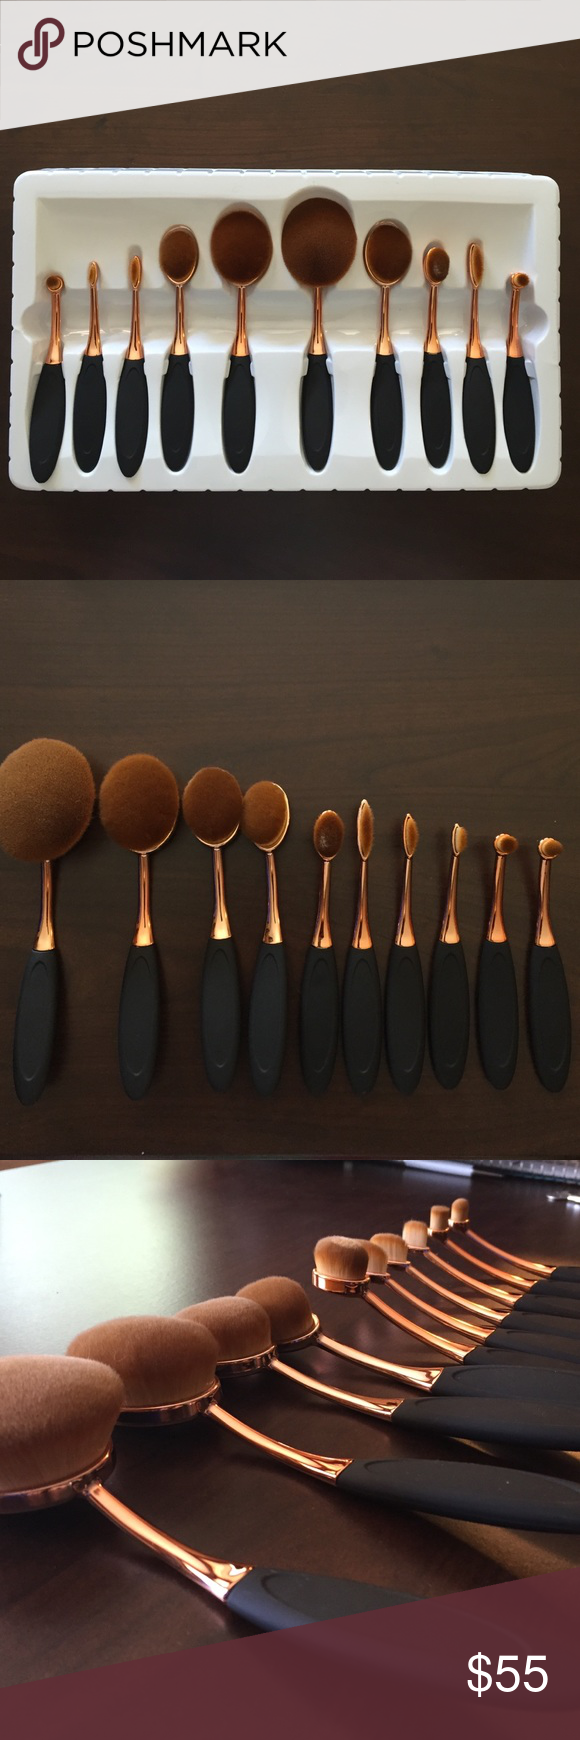 CLEARANCE💥New Boxed Oval Makeup brush set Boutique Oval